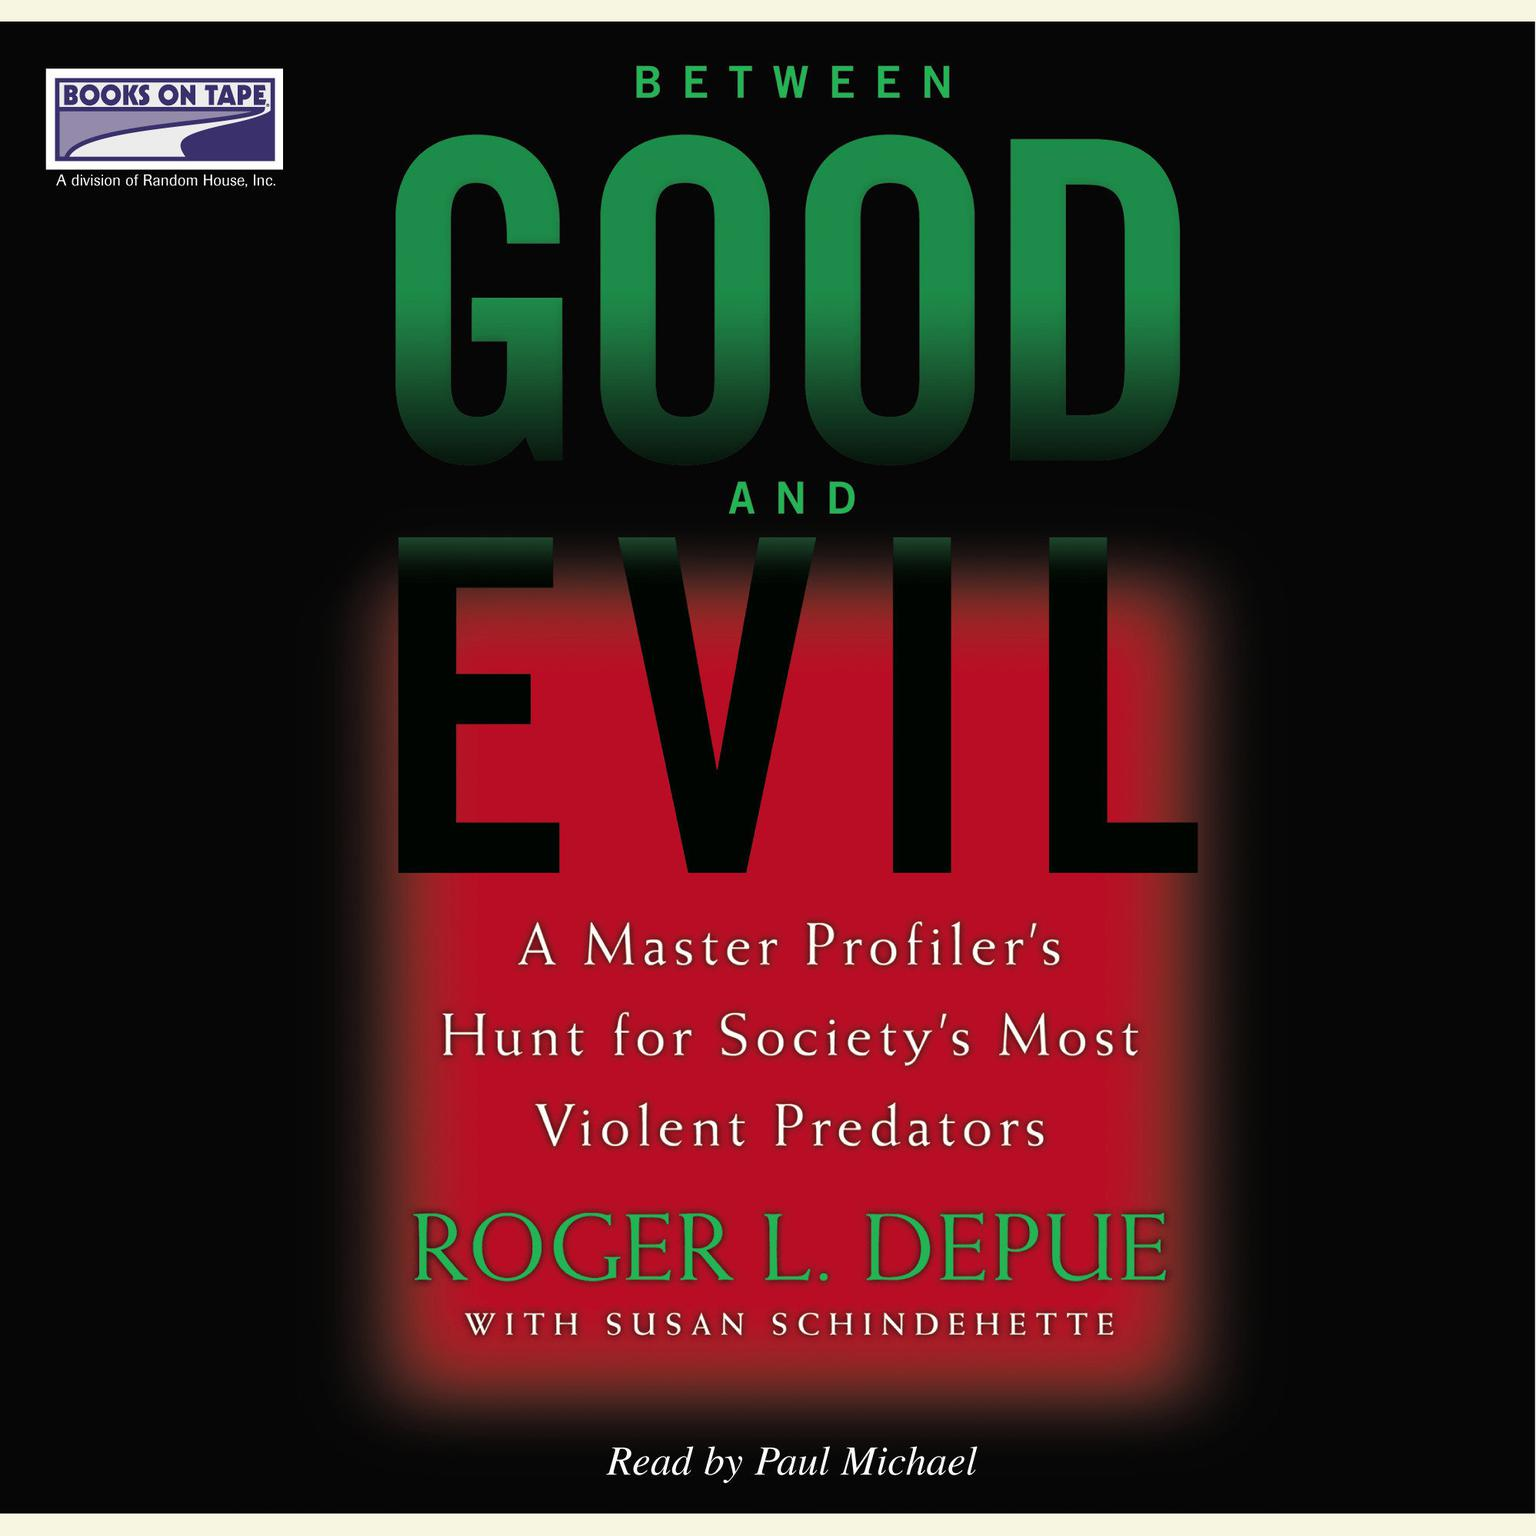 Printable Between Good and Evil: A Master Profiler's Hunt for Society's Most Violent Predators Audiobook Cover Art